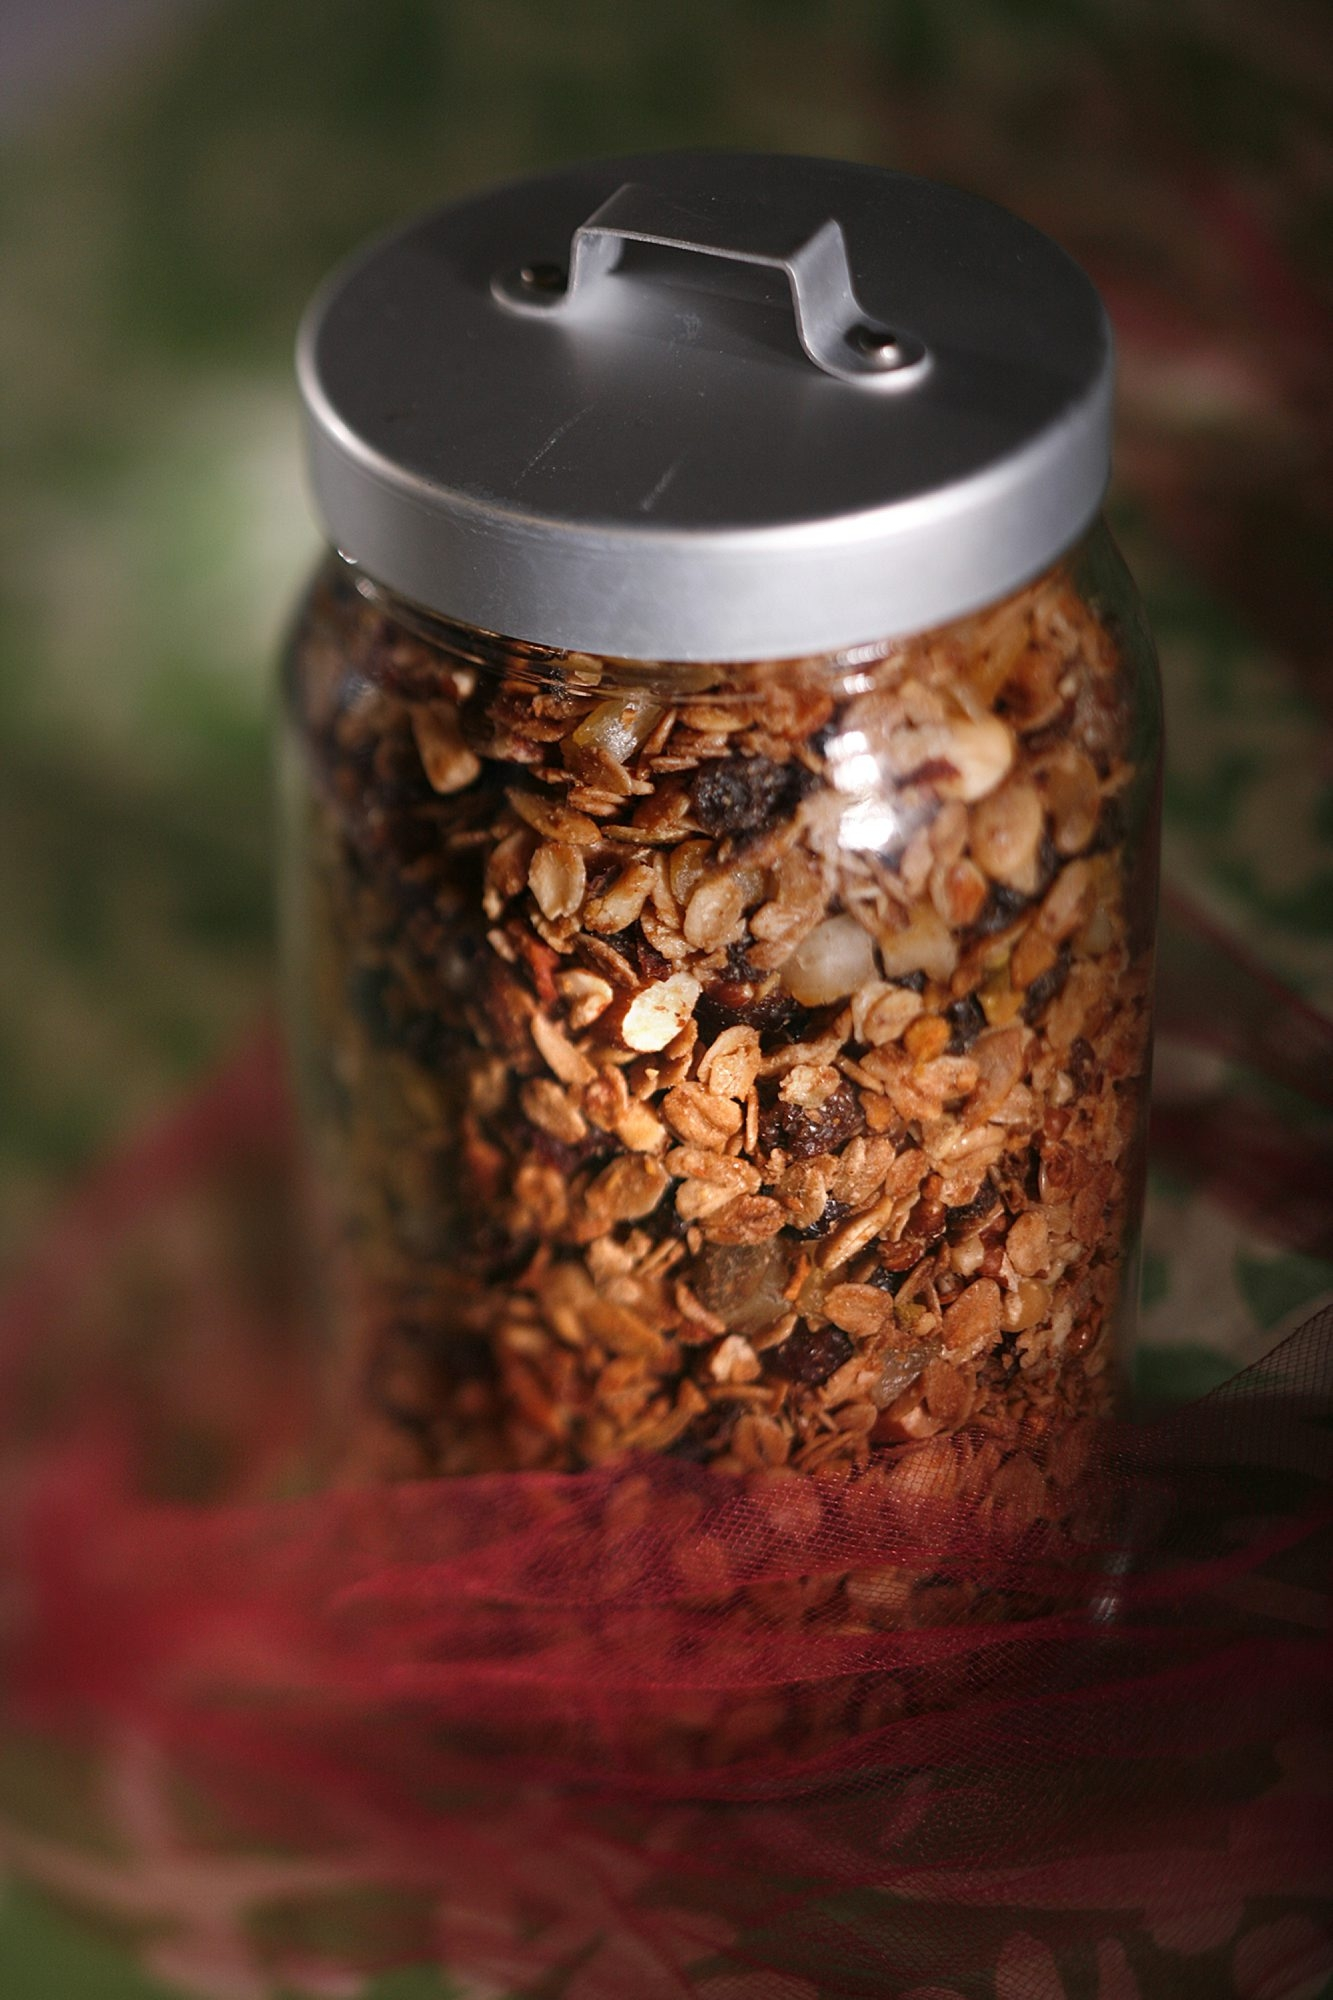 This granola mix would make a terrific gift, packaged in a storage jar.